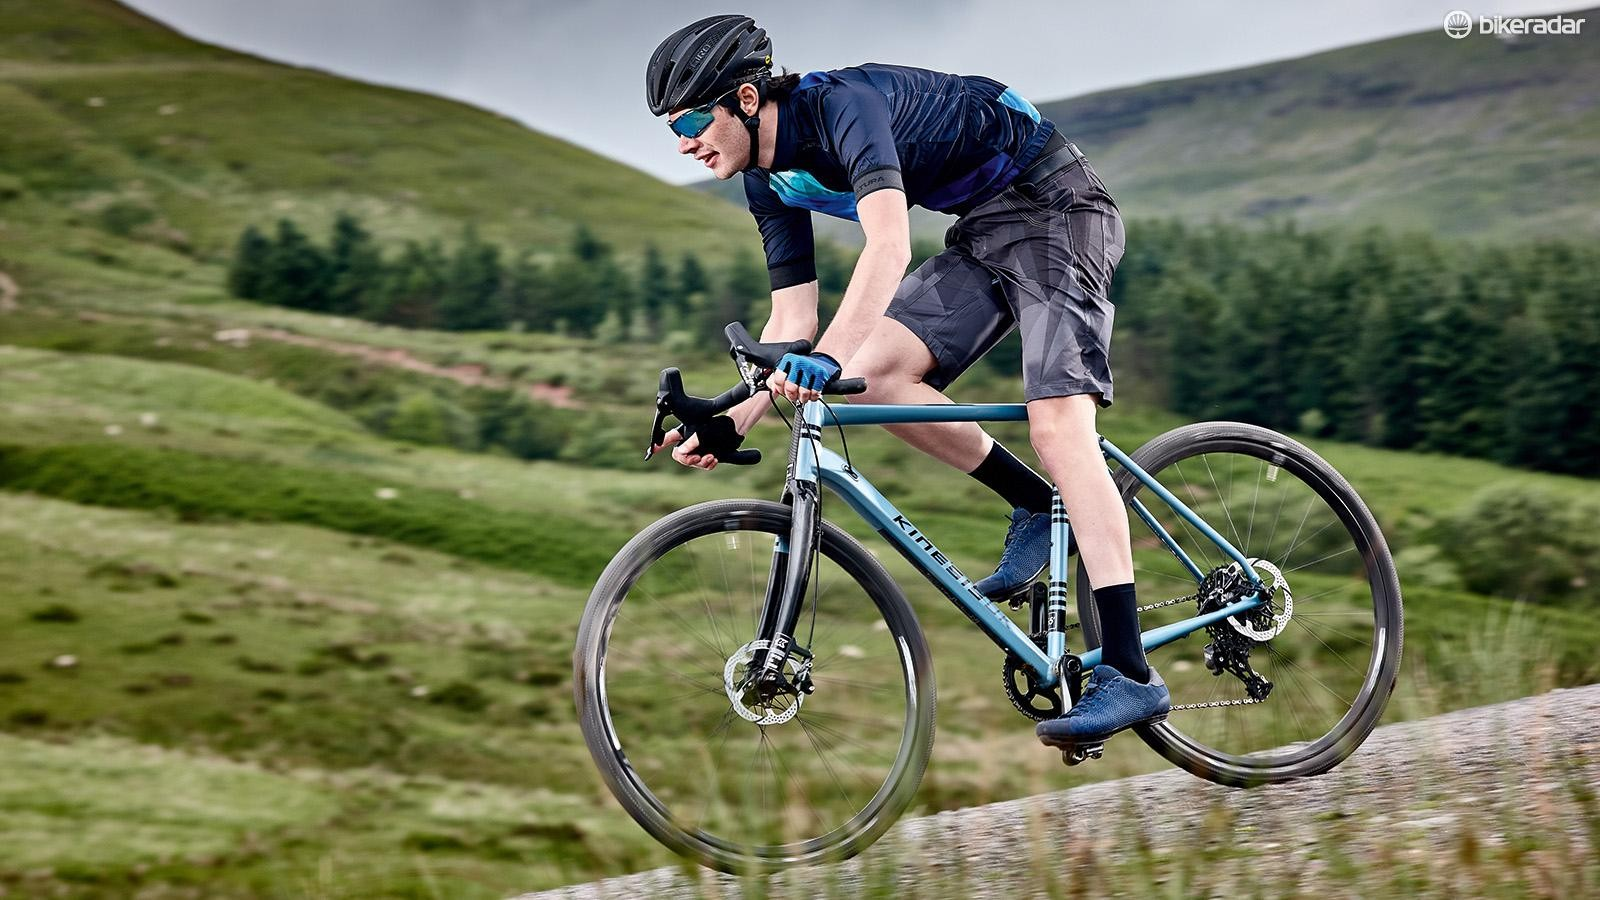 The versatile, durable Tripster AT can commute, race or explore with the best